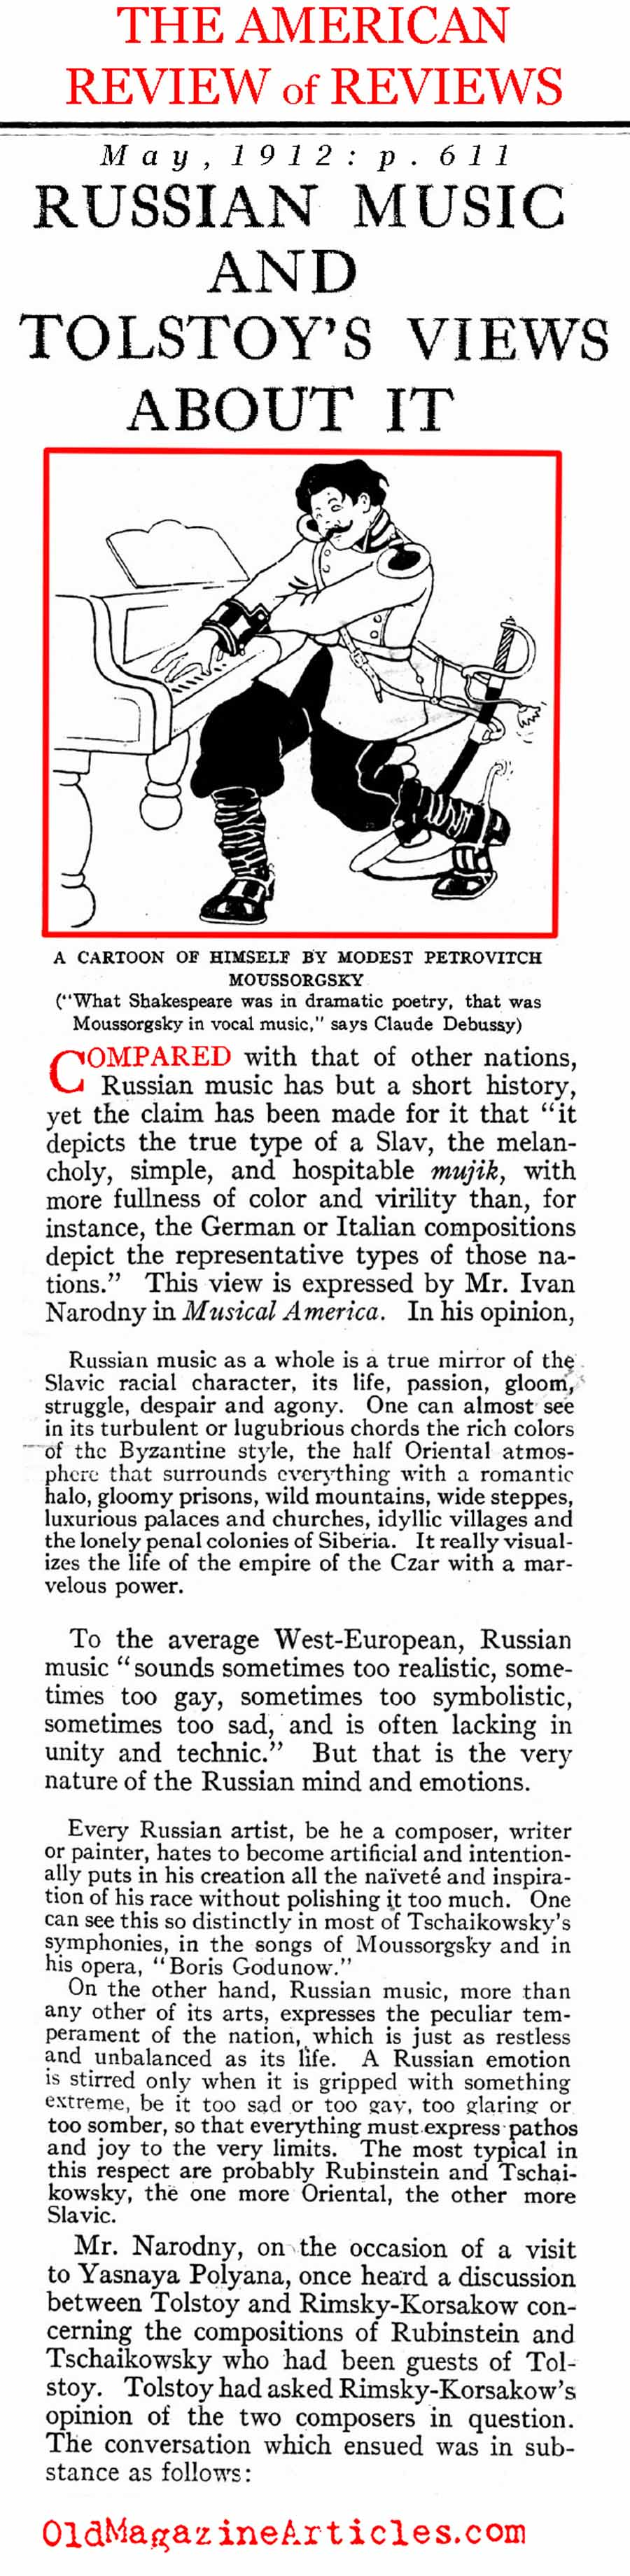 Russian Composers Preferred by Rimsky-Korsakov  (Review of Reviews, 1912)